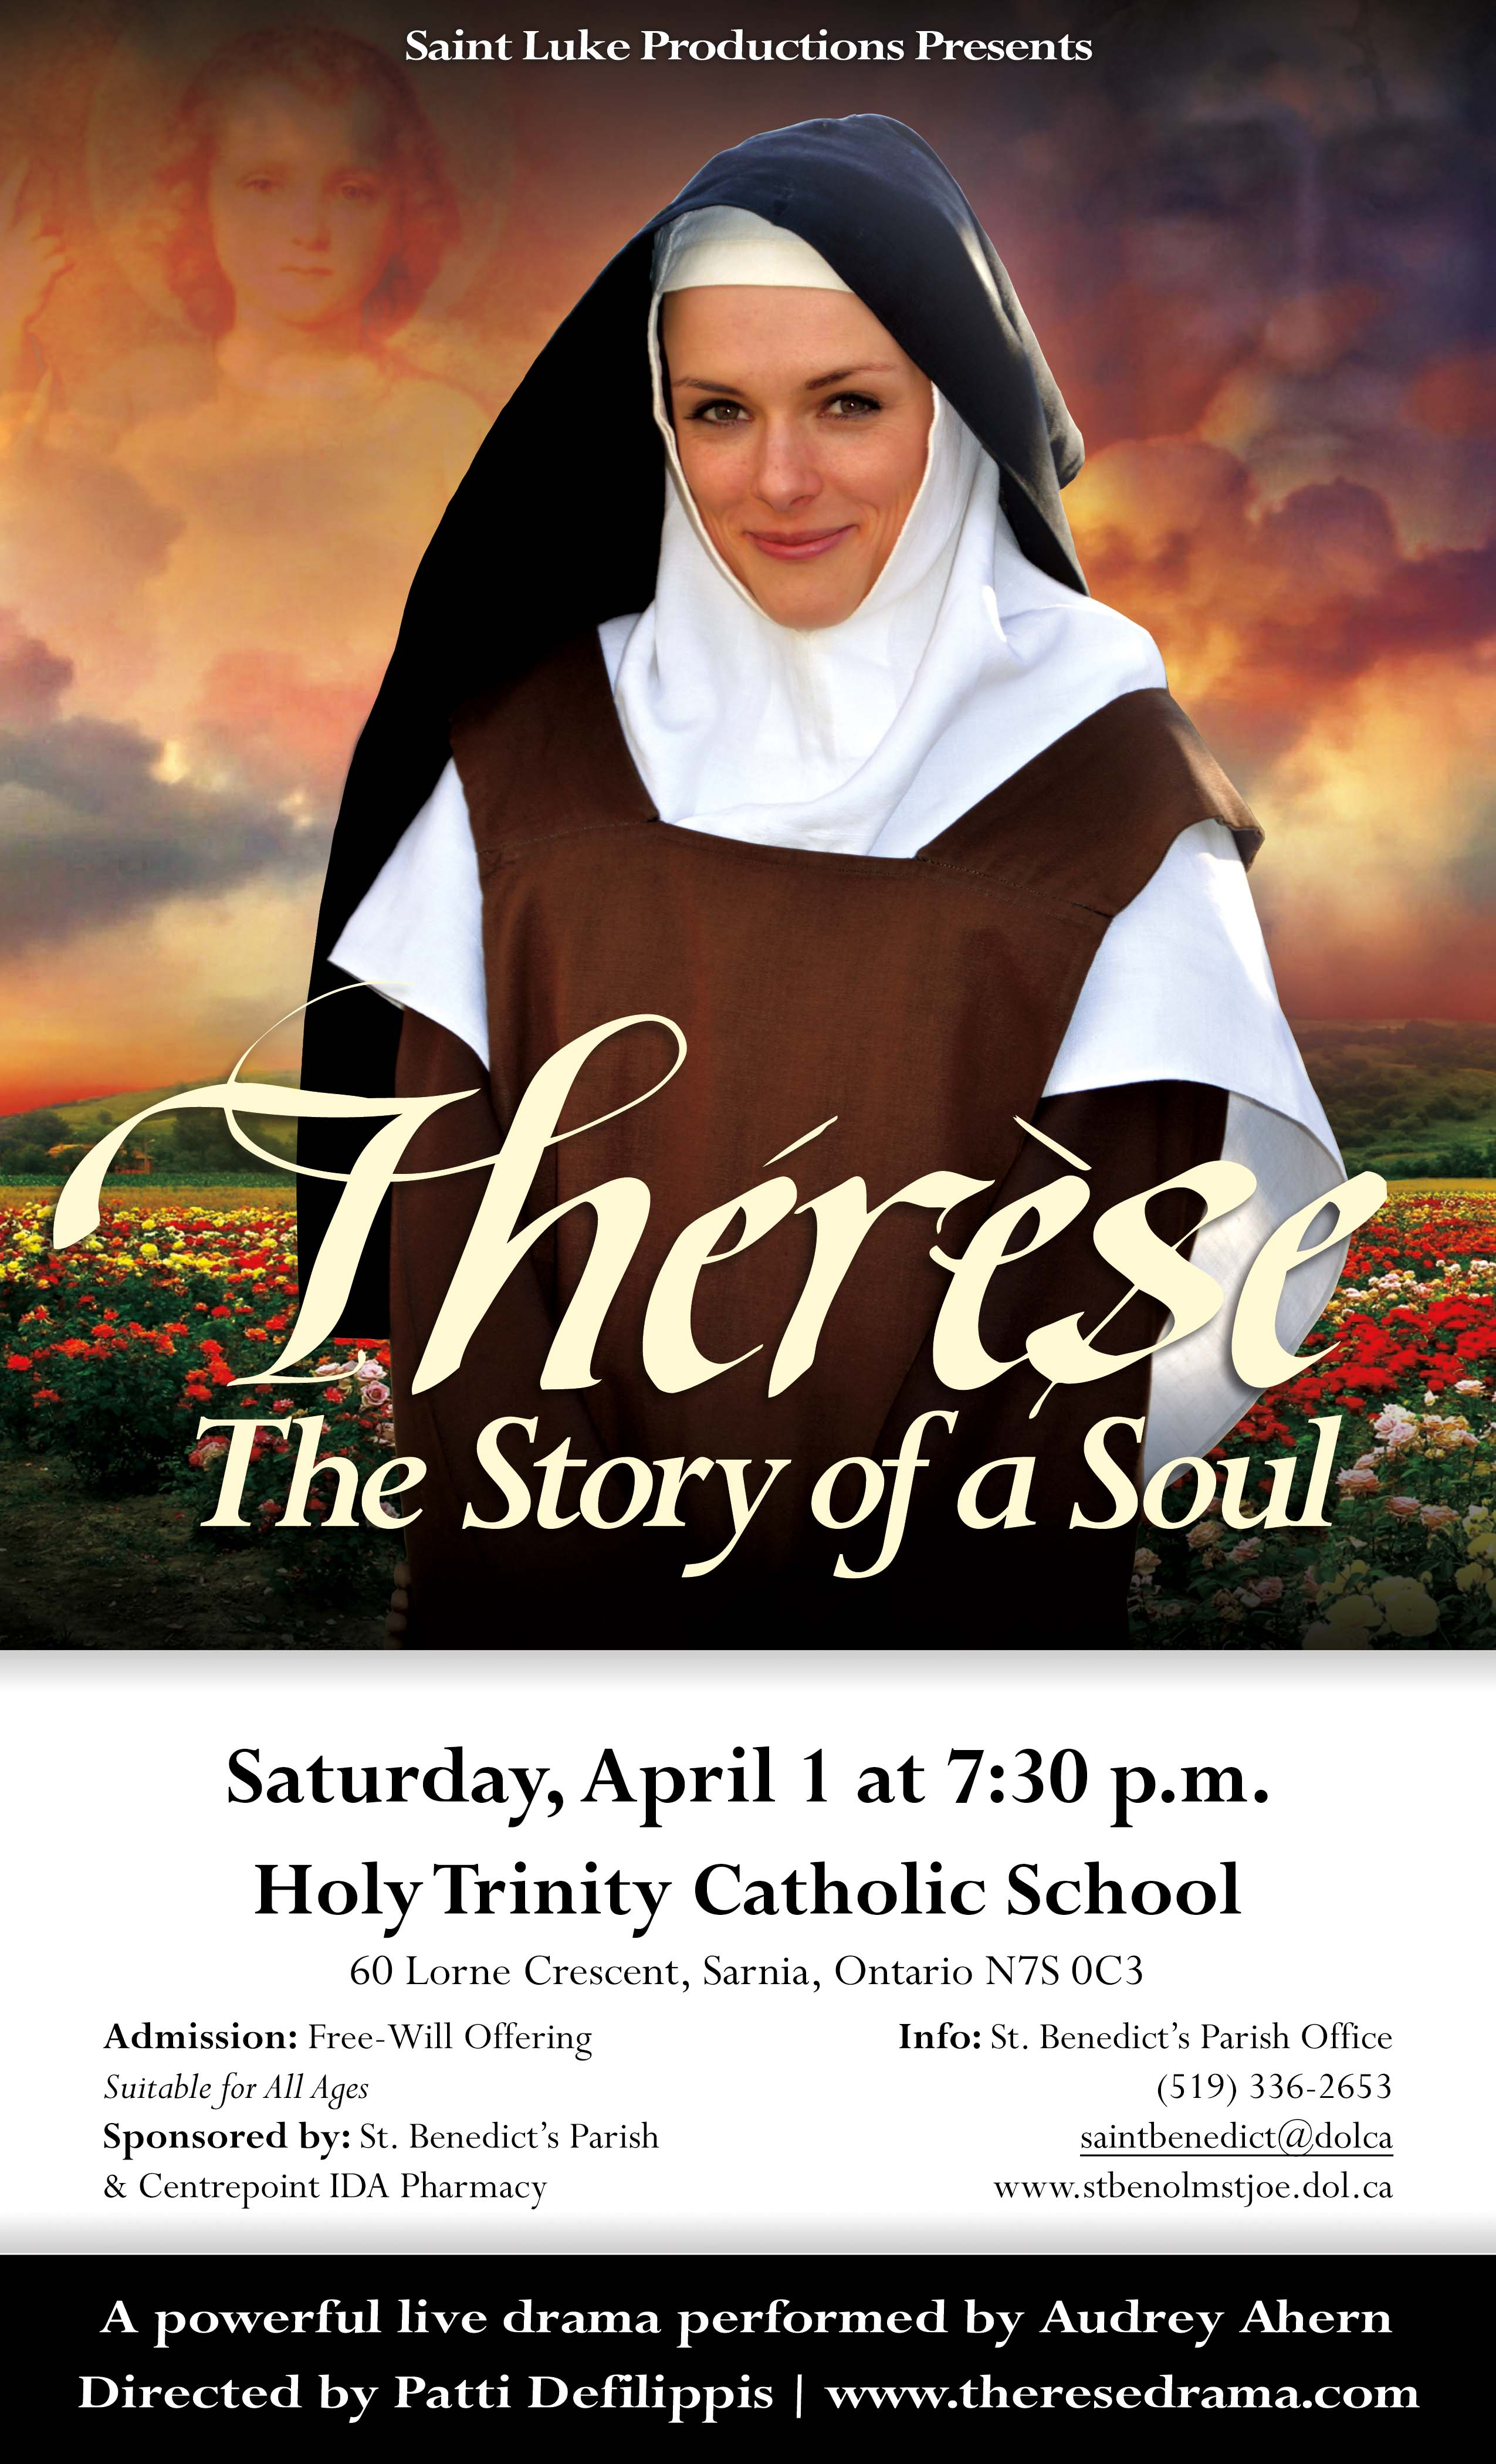 Poster for St. Therese Show